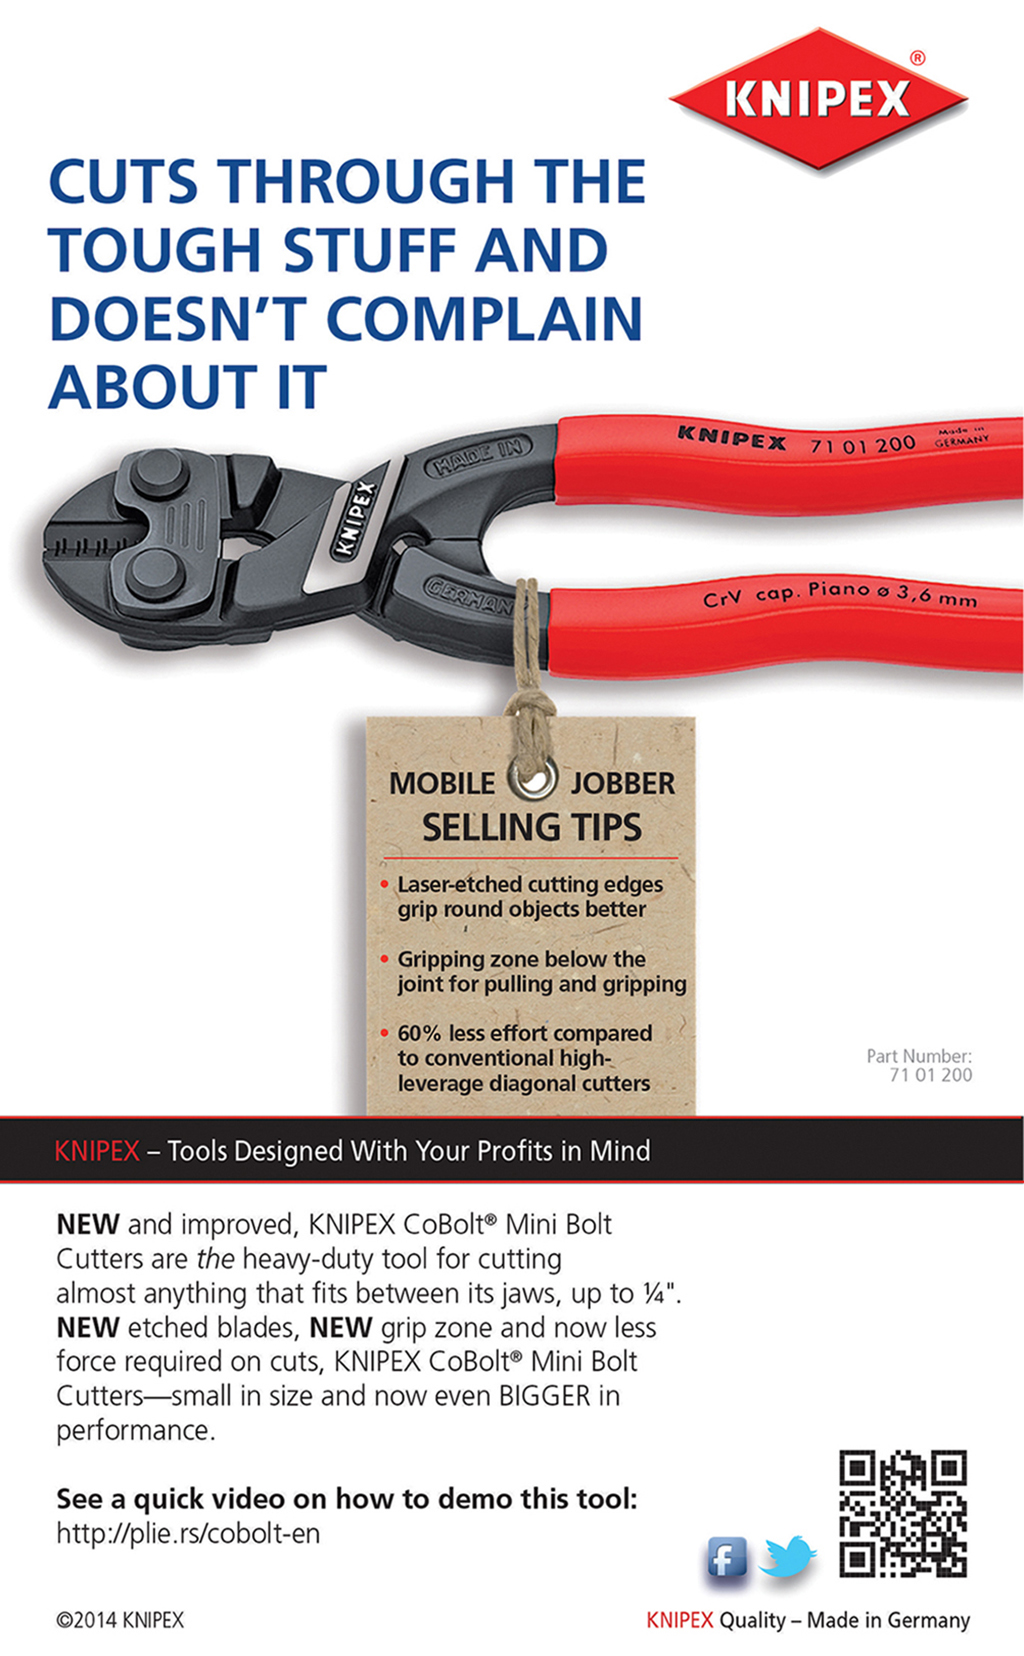 KNIPEX — Making the Sale